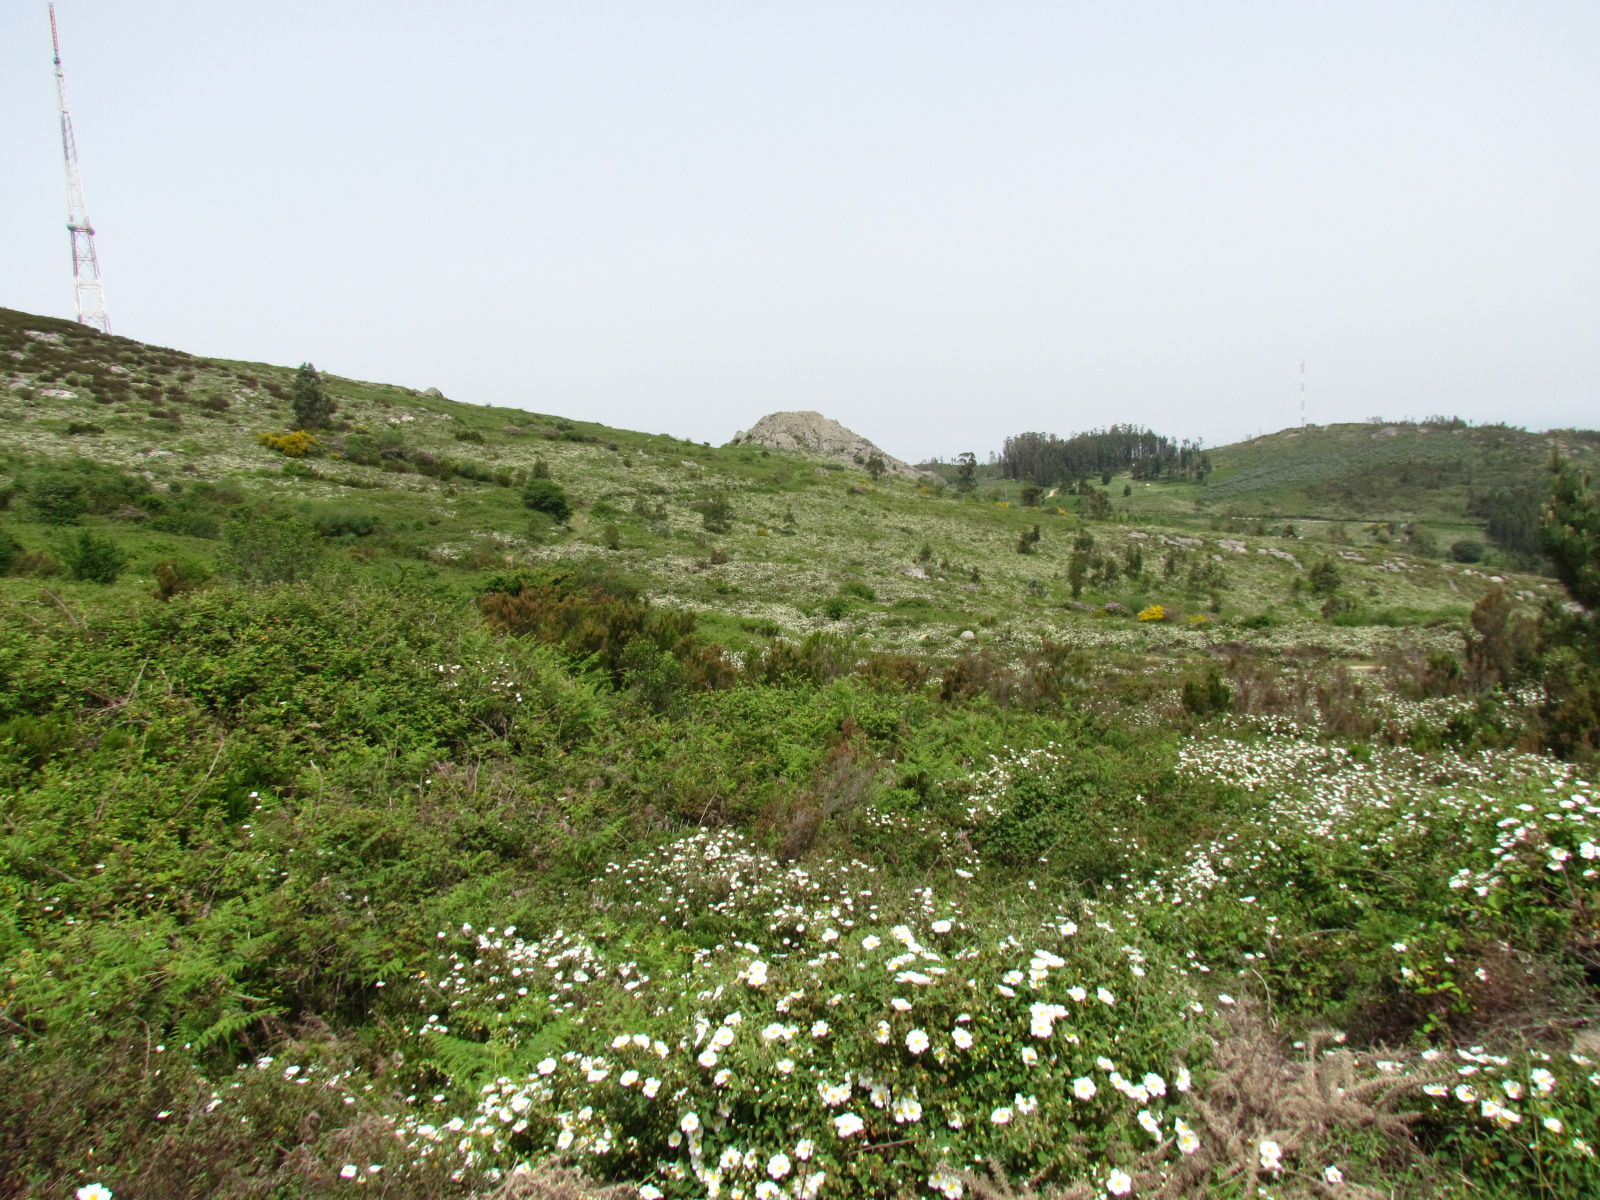 Flowers in the hills